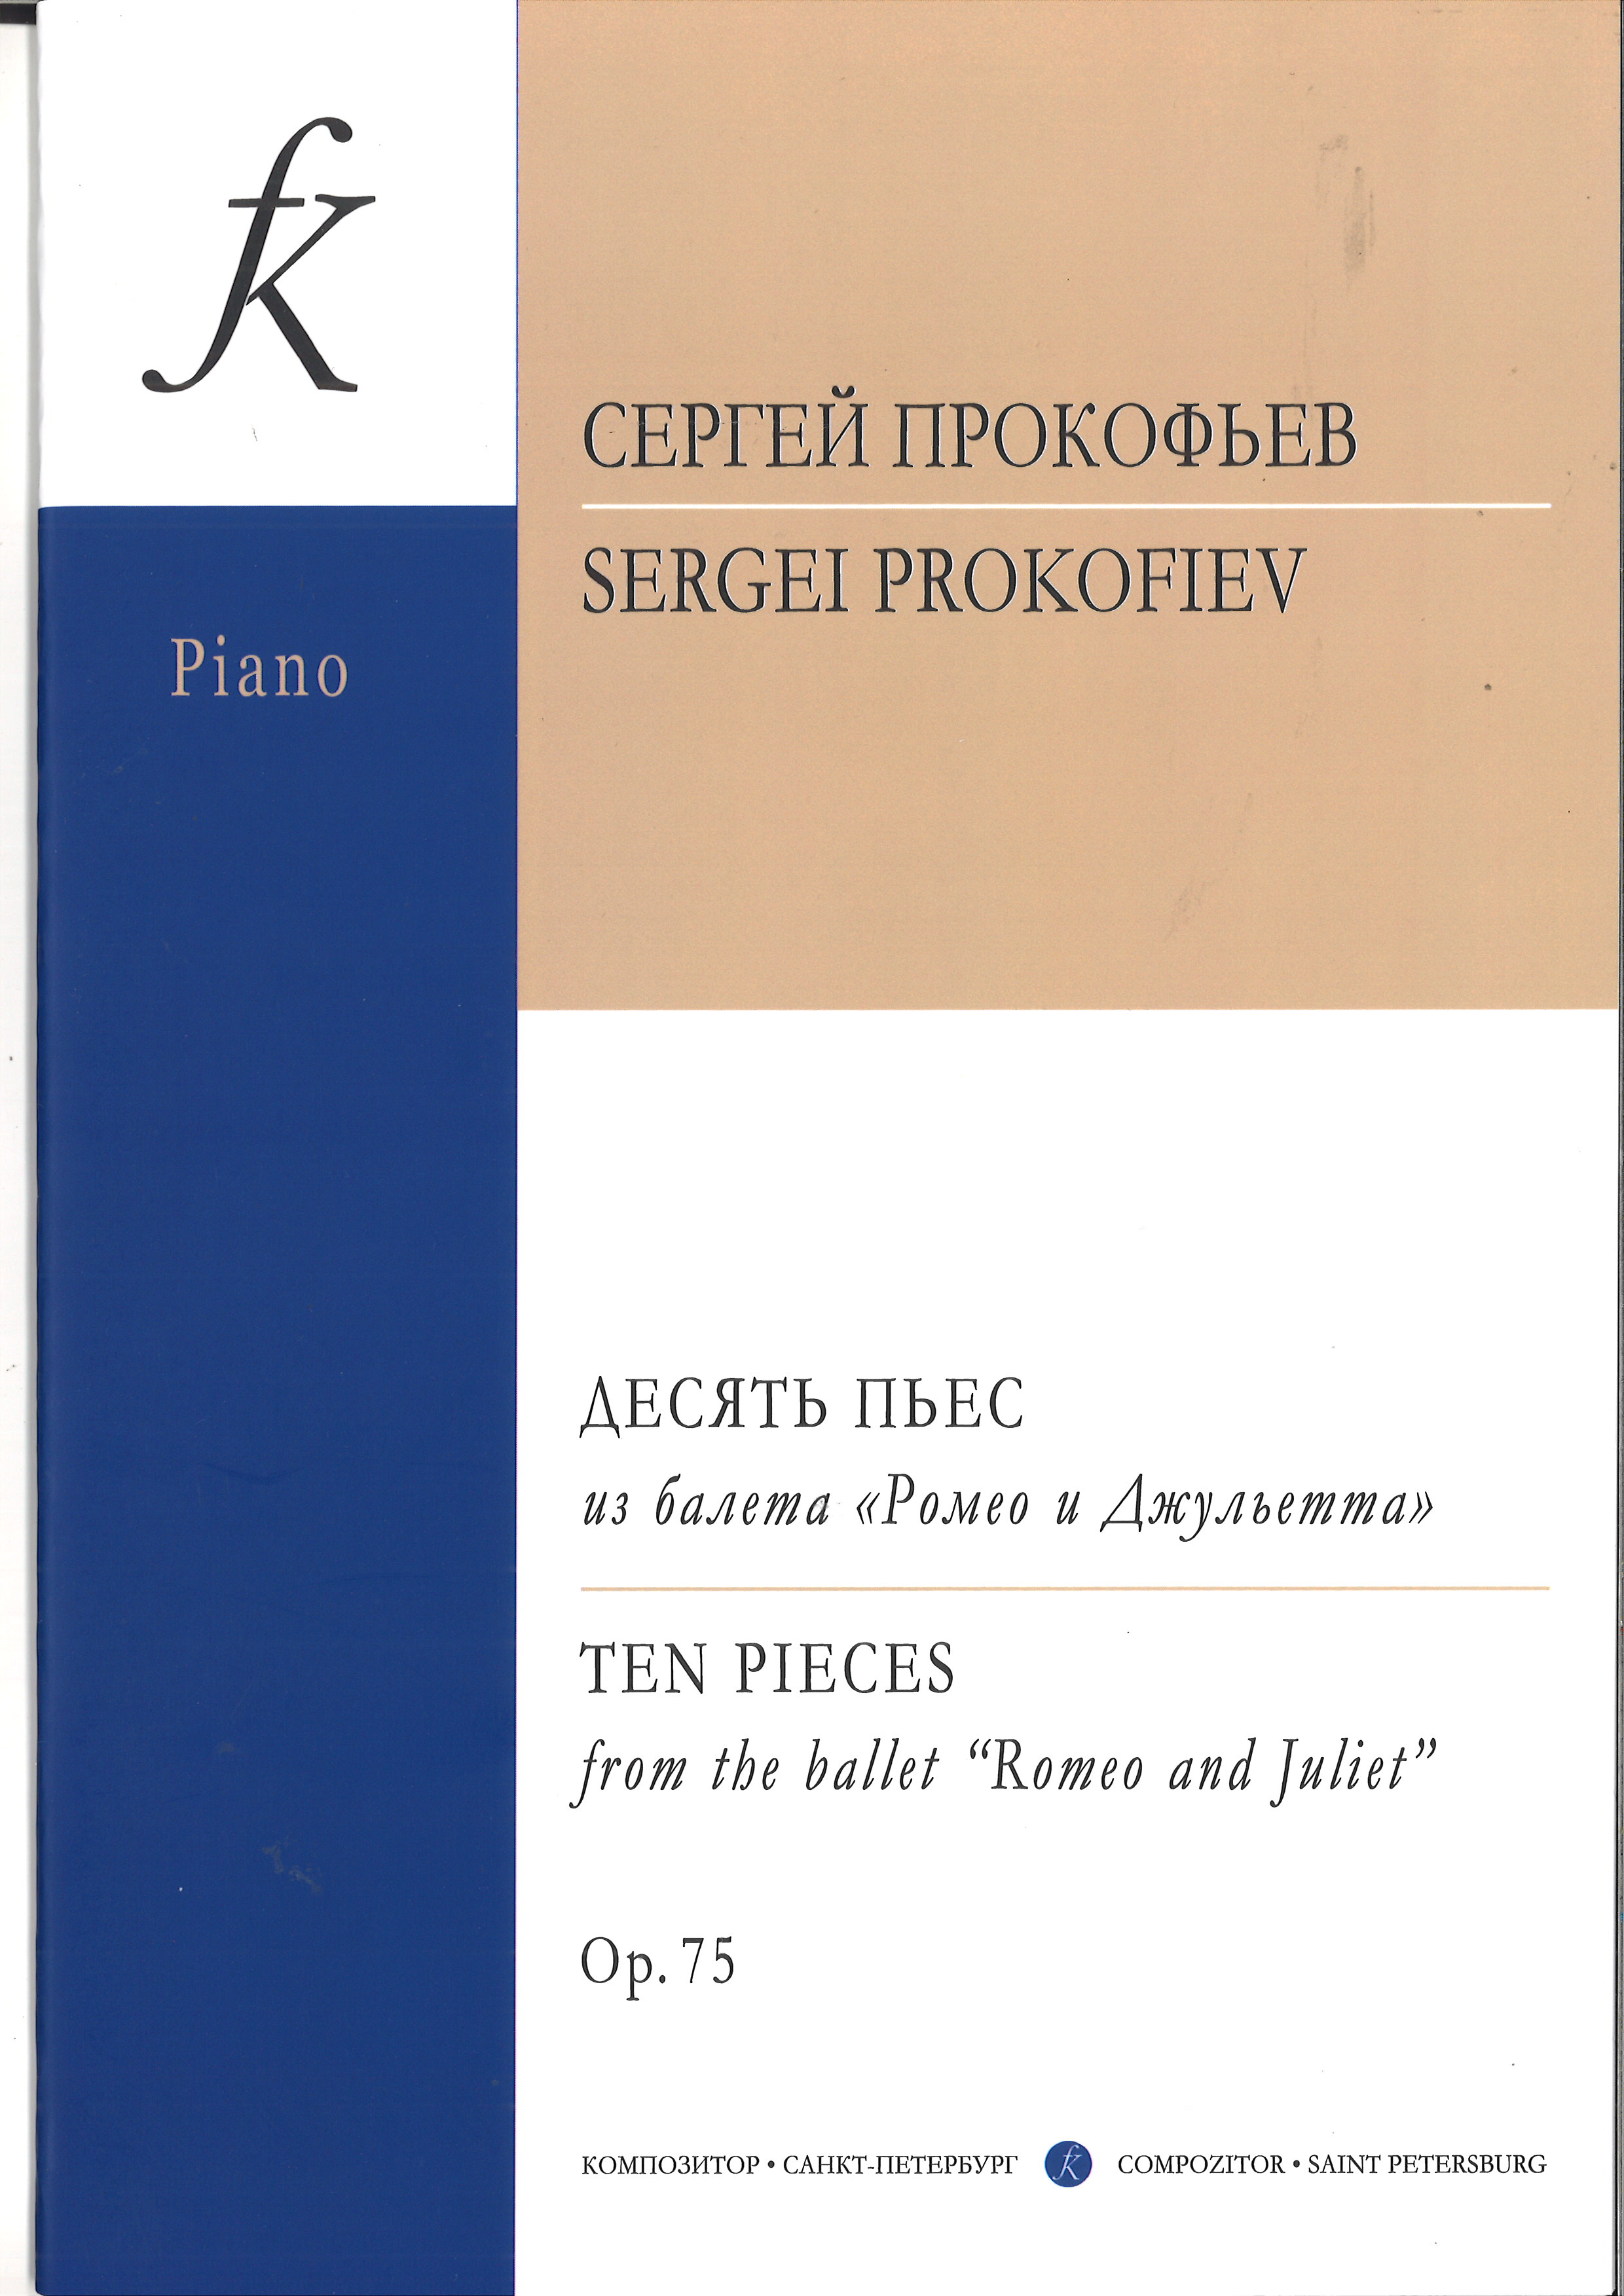 Ten Pieces From the Ballet Romeo and Juliet. Arranged for piano by the author himself. Op. 75